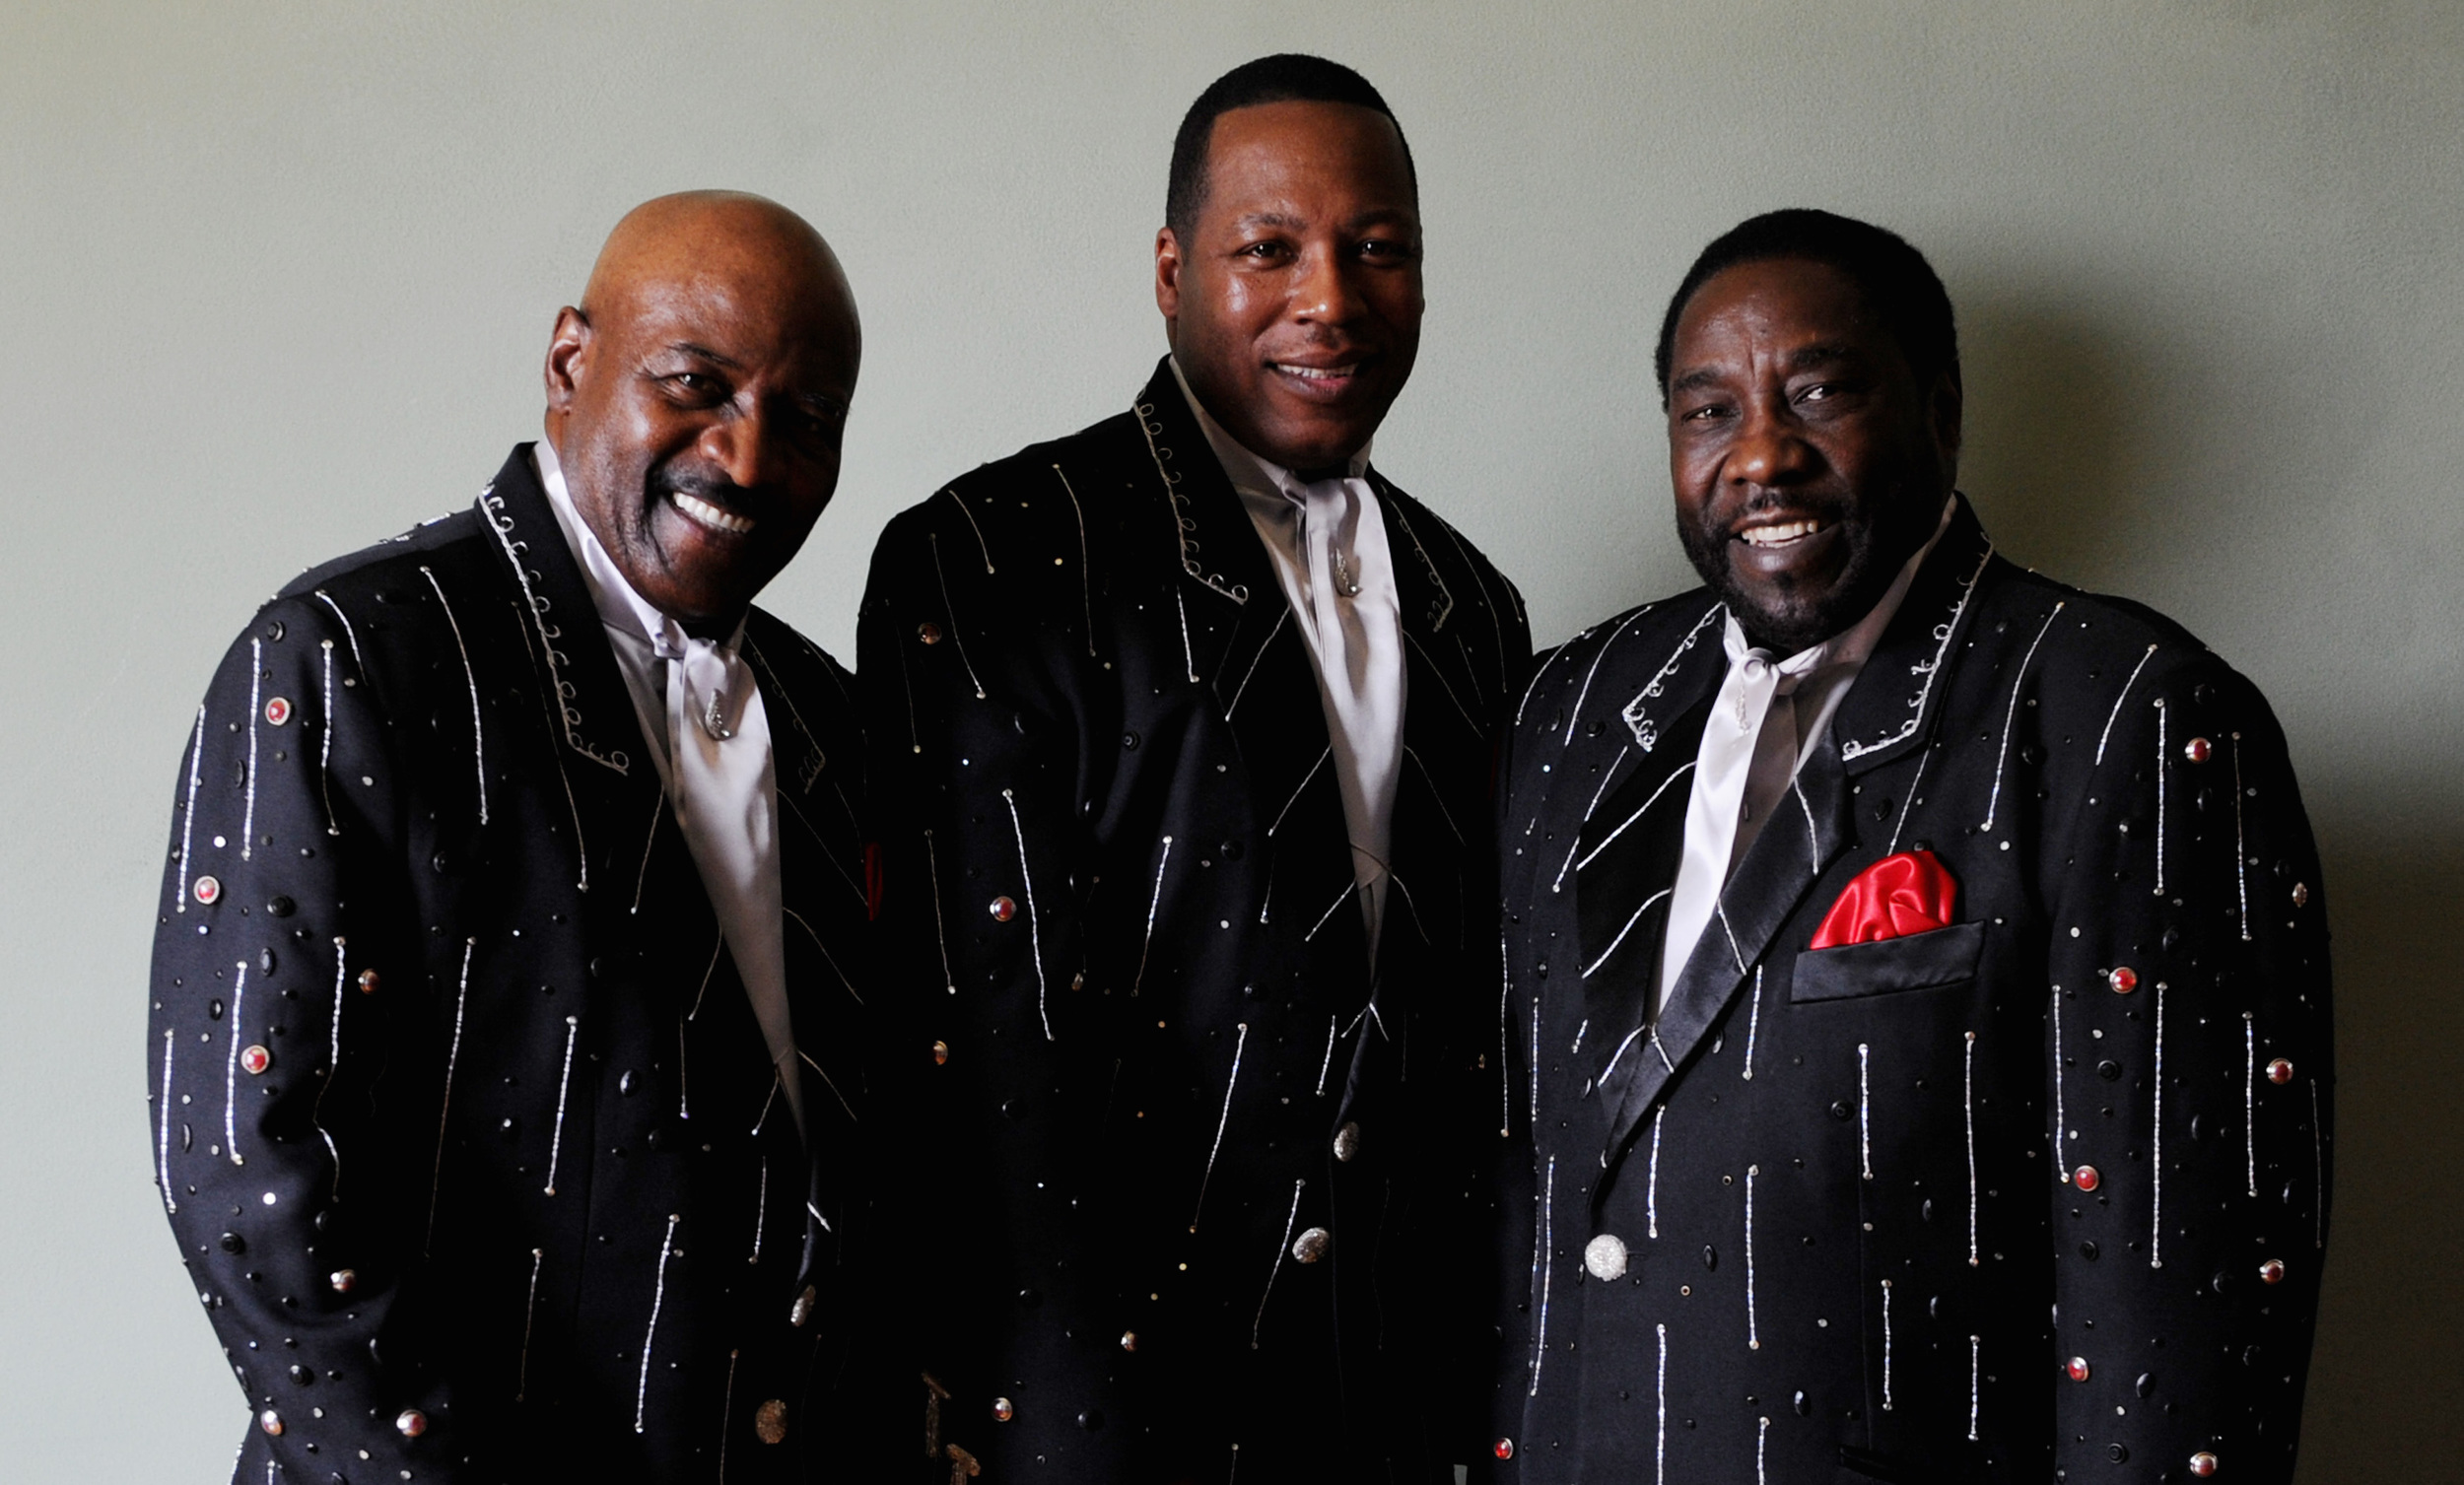 Rock and Roll Hall of Fame R&B group The O'Jays will perform in October at the Sands Bethlehem Event Center in Bethlehem.  (Courtesy Photo)